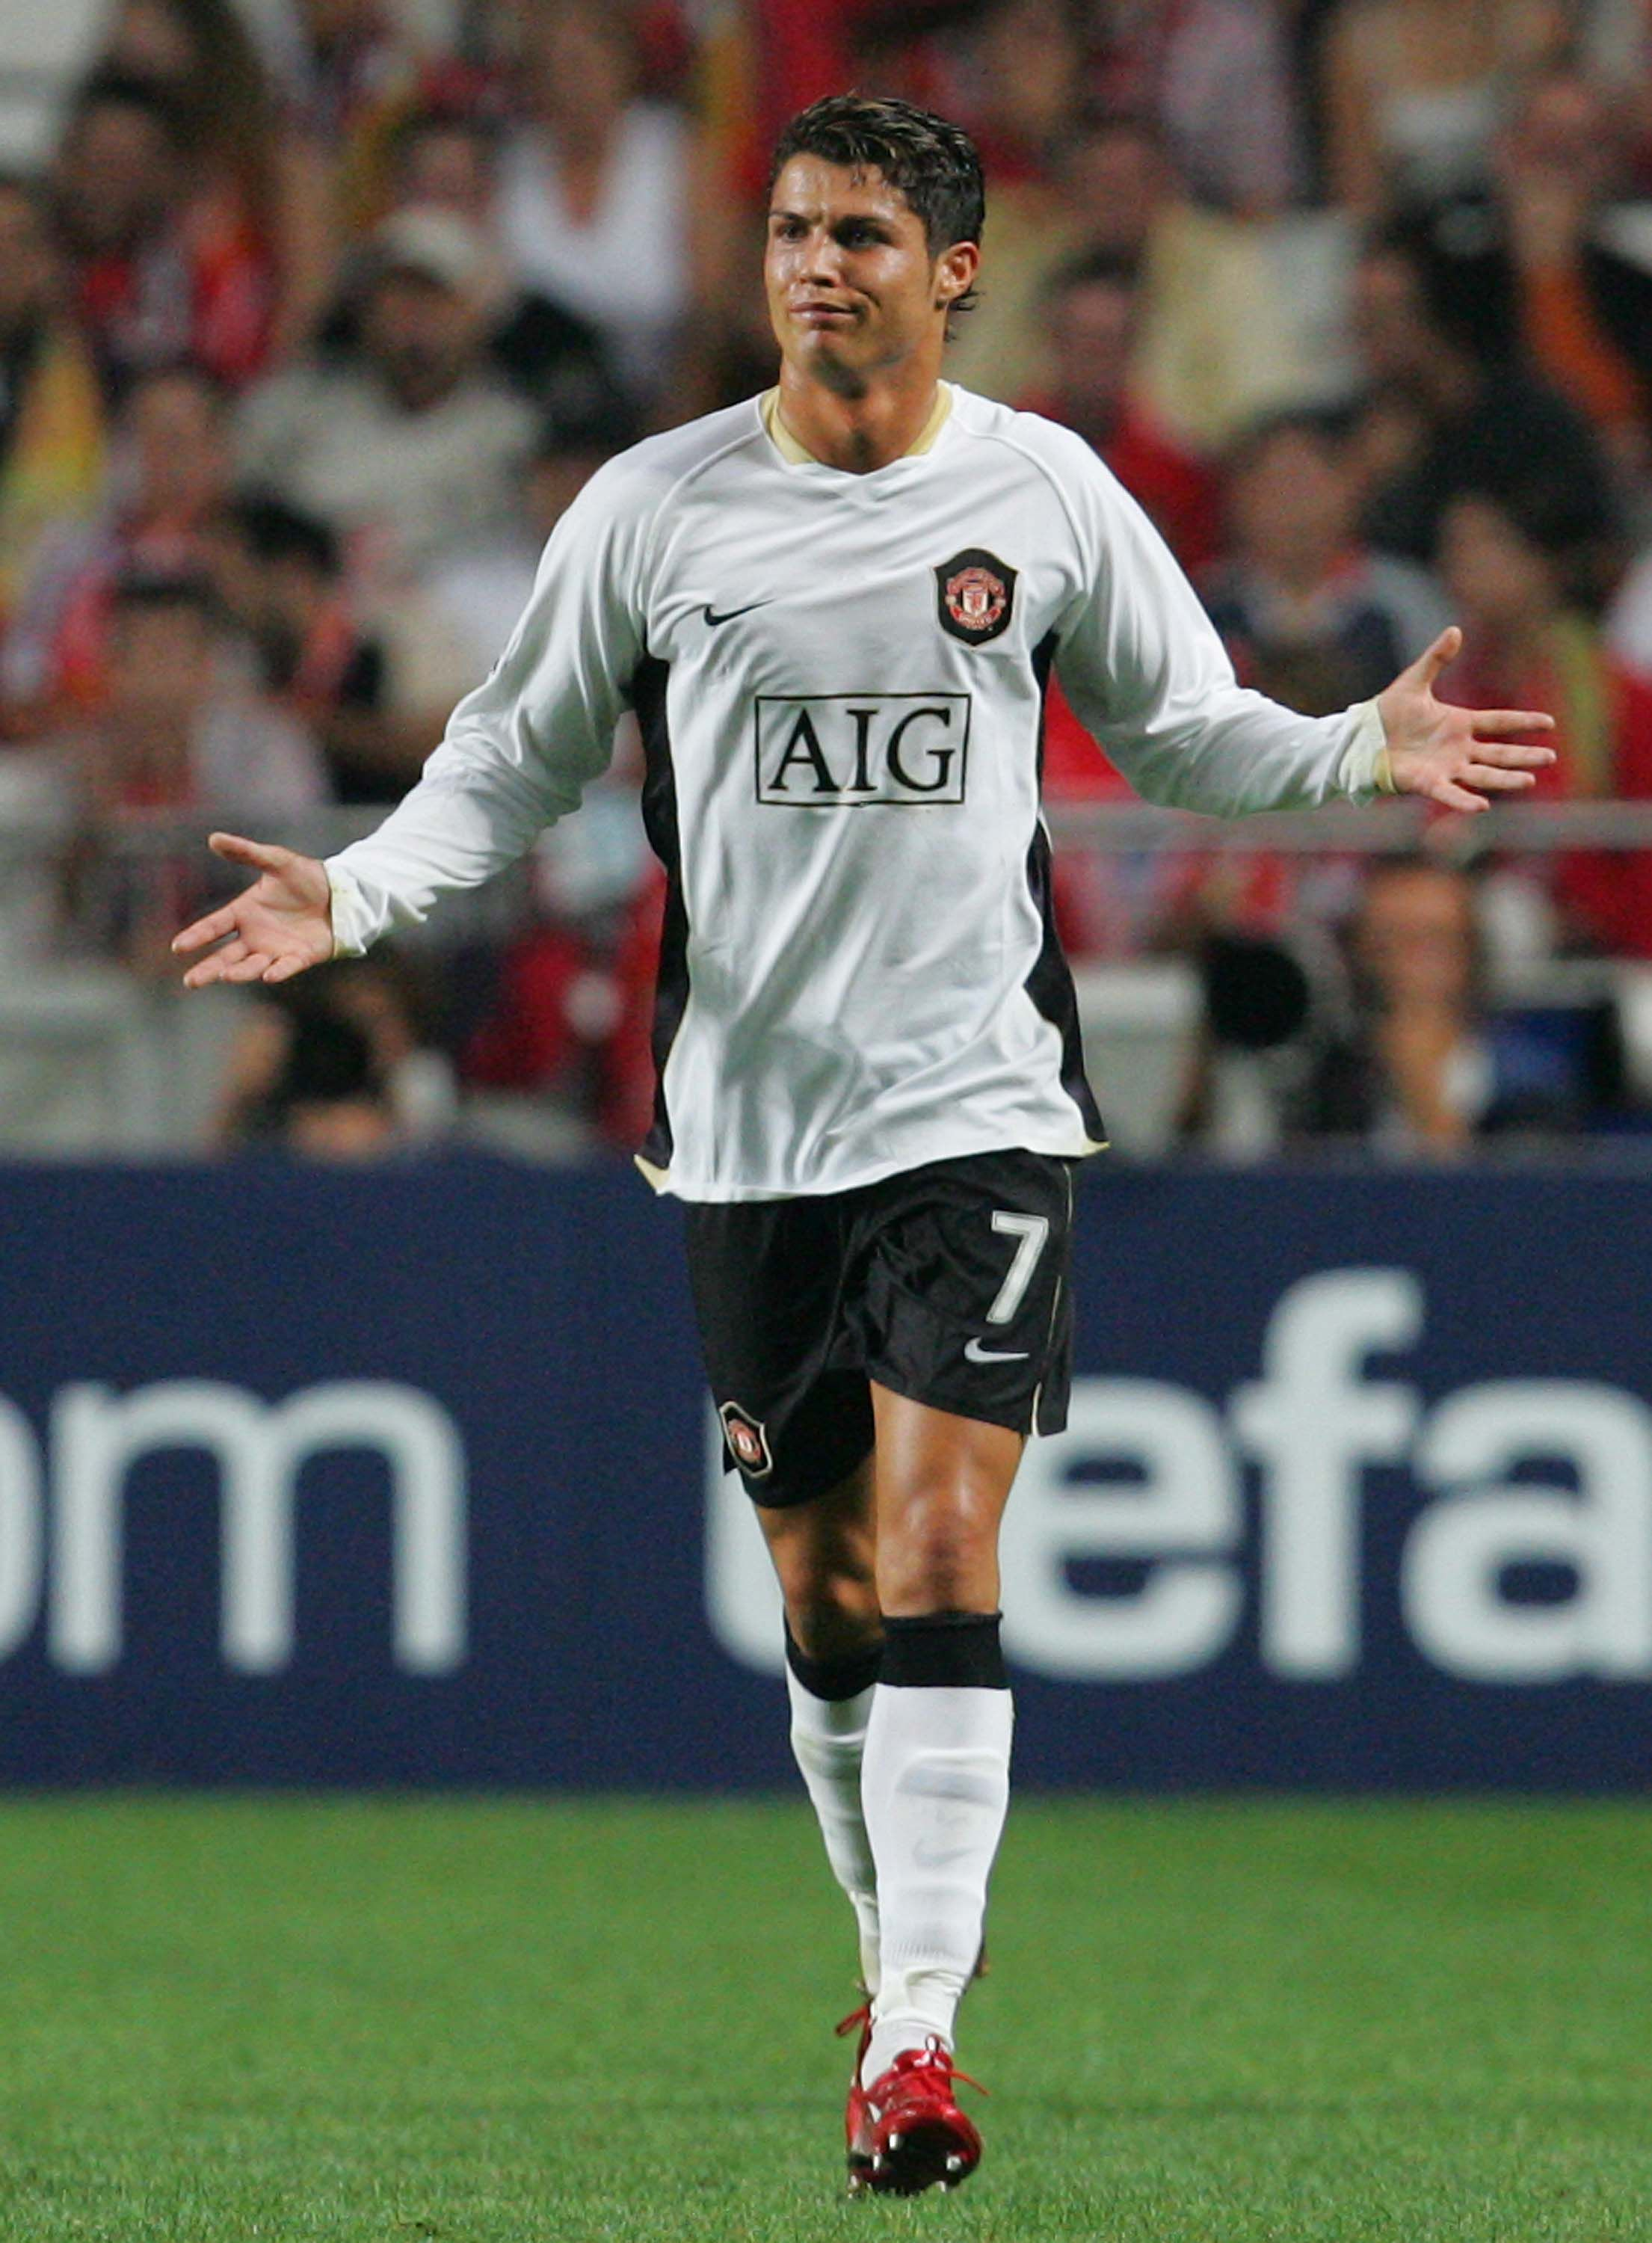 Something S Got Cristiano Ronaldo Puzzled During Manutd S 1 0 Win Over Benfica In 2007 08 Champions Lea Cristiano Ronaldo Manchester Ronaldo Cristiano Ronaldo